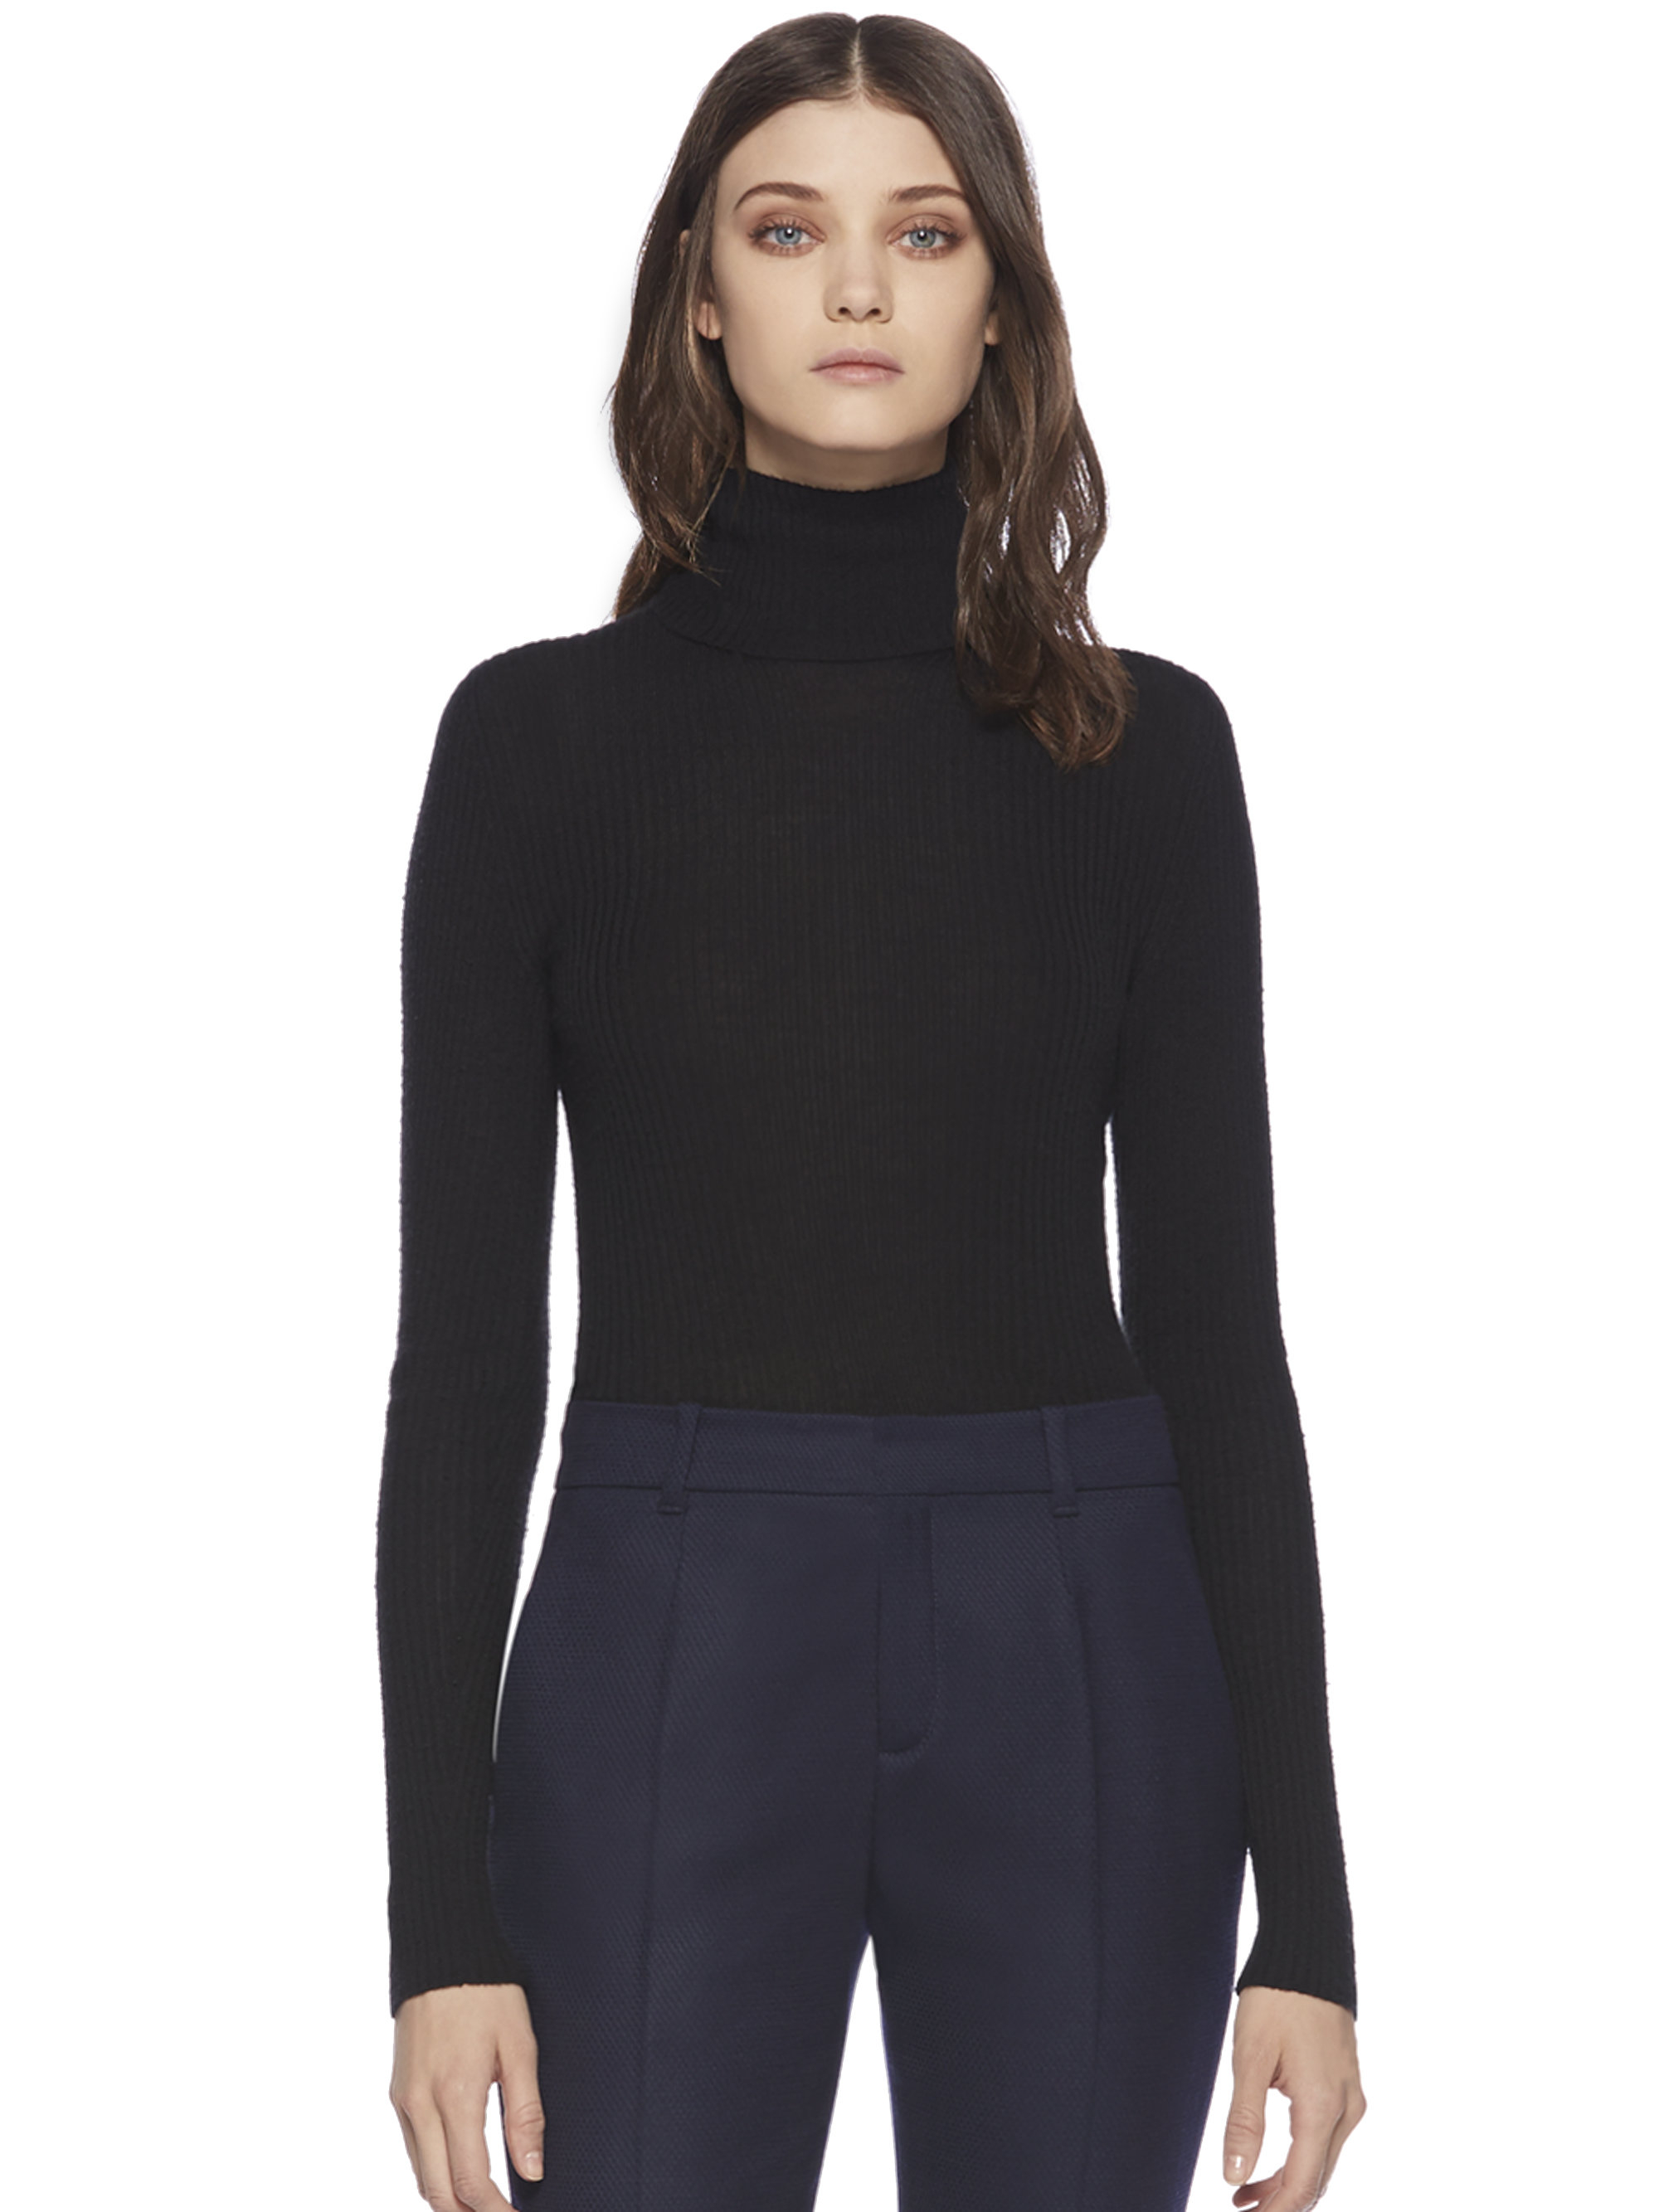 These Military Surplus Mock Turtleneck thermal shirts are very high quality and extremely warm. Made from a moisture wicking blend of materials that is tightly stitched, stretchy & soft to the touch. These undershirts are worn by U.S. Military.